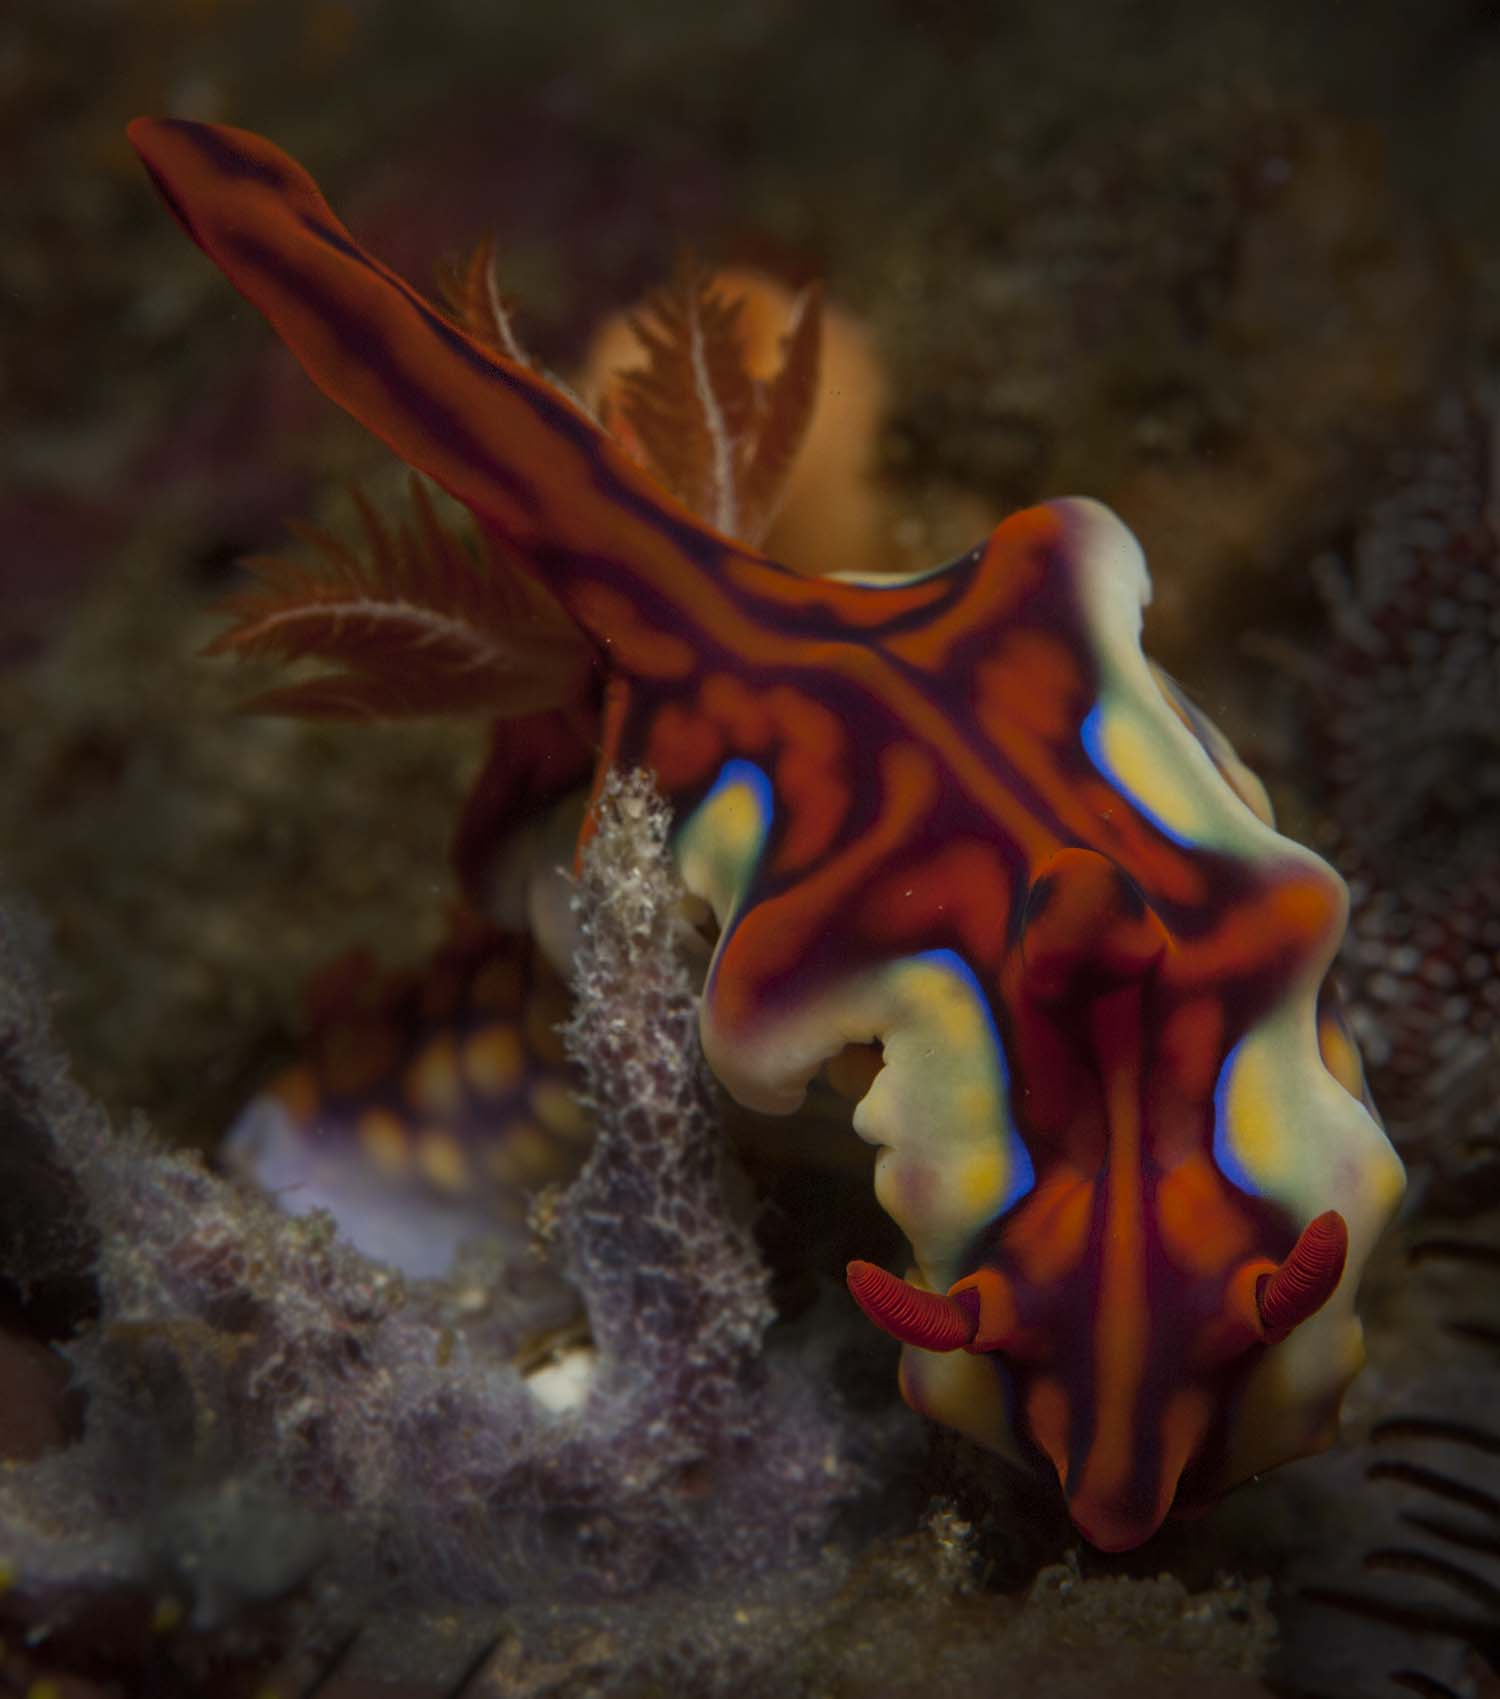 Nudibranch Komodo 2015 by Ulrika Kroon